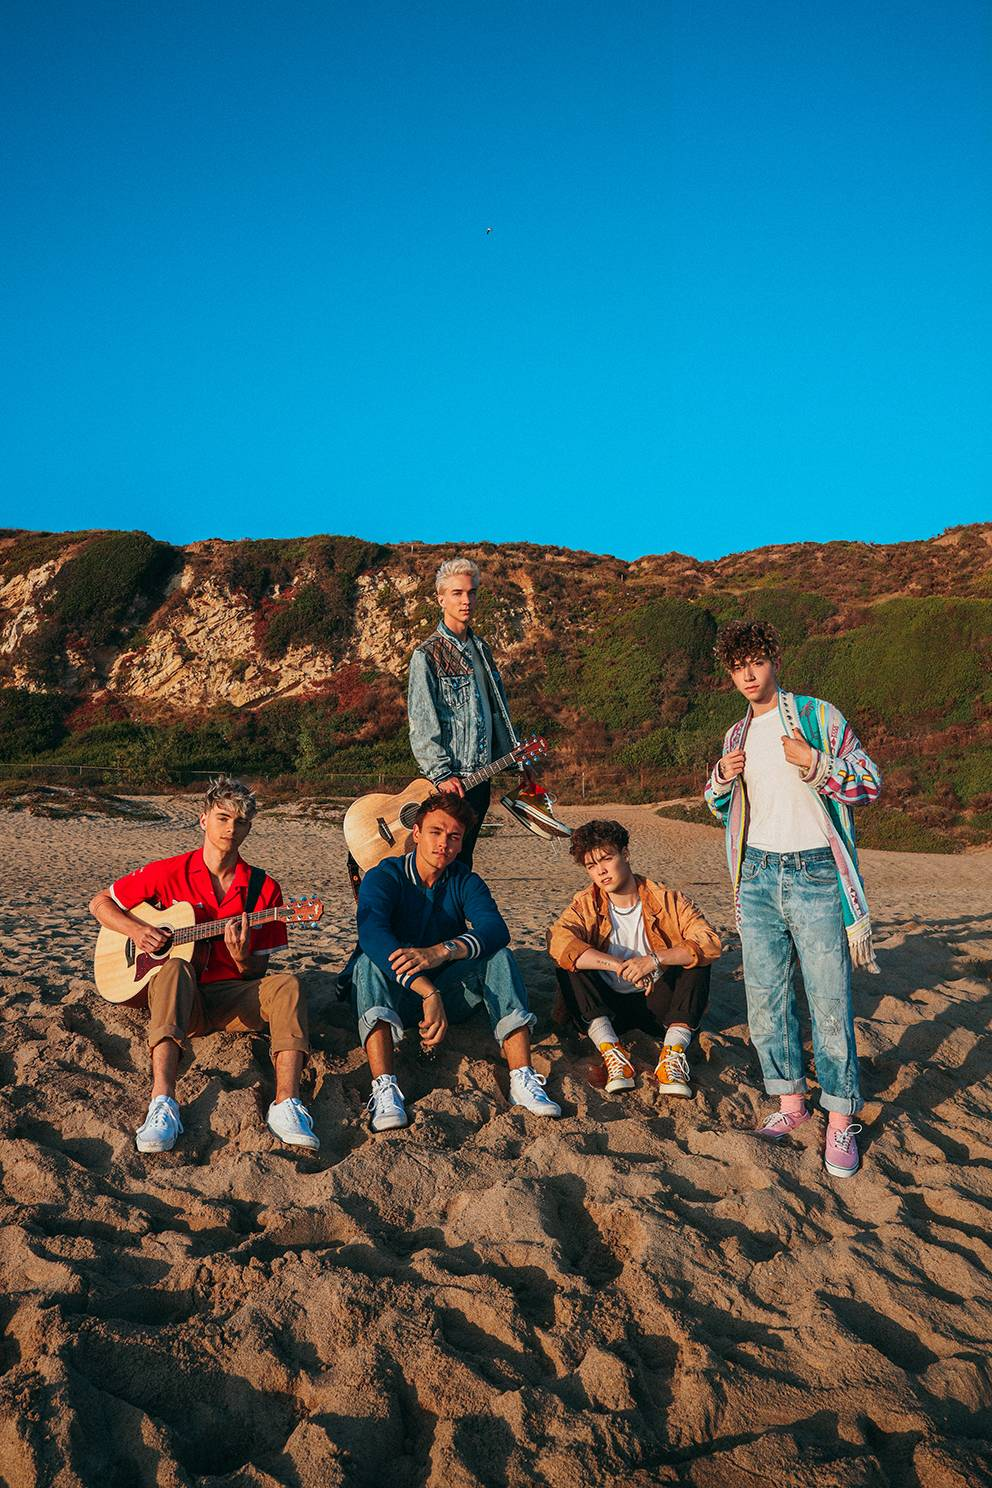 Members of Why Don't We lived together for over a year when they first moved to Los Angeles to pursue their music dreams in 2016.